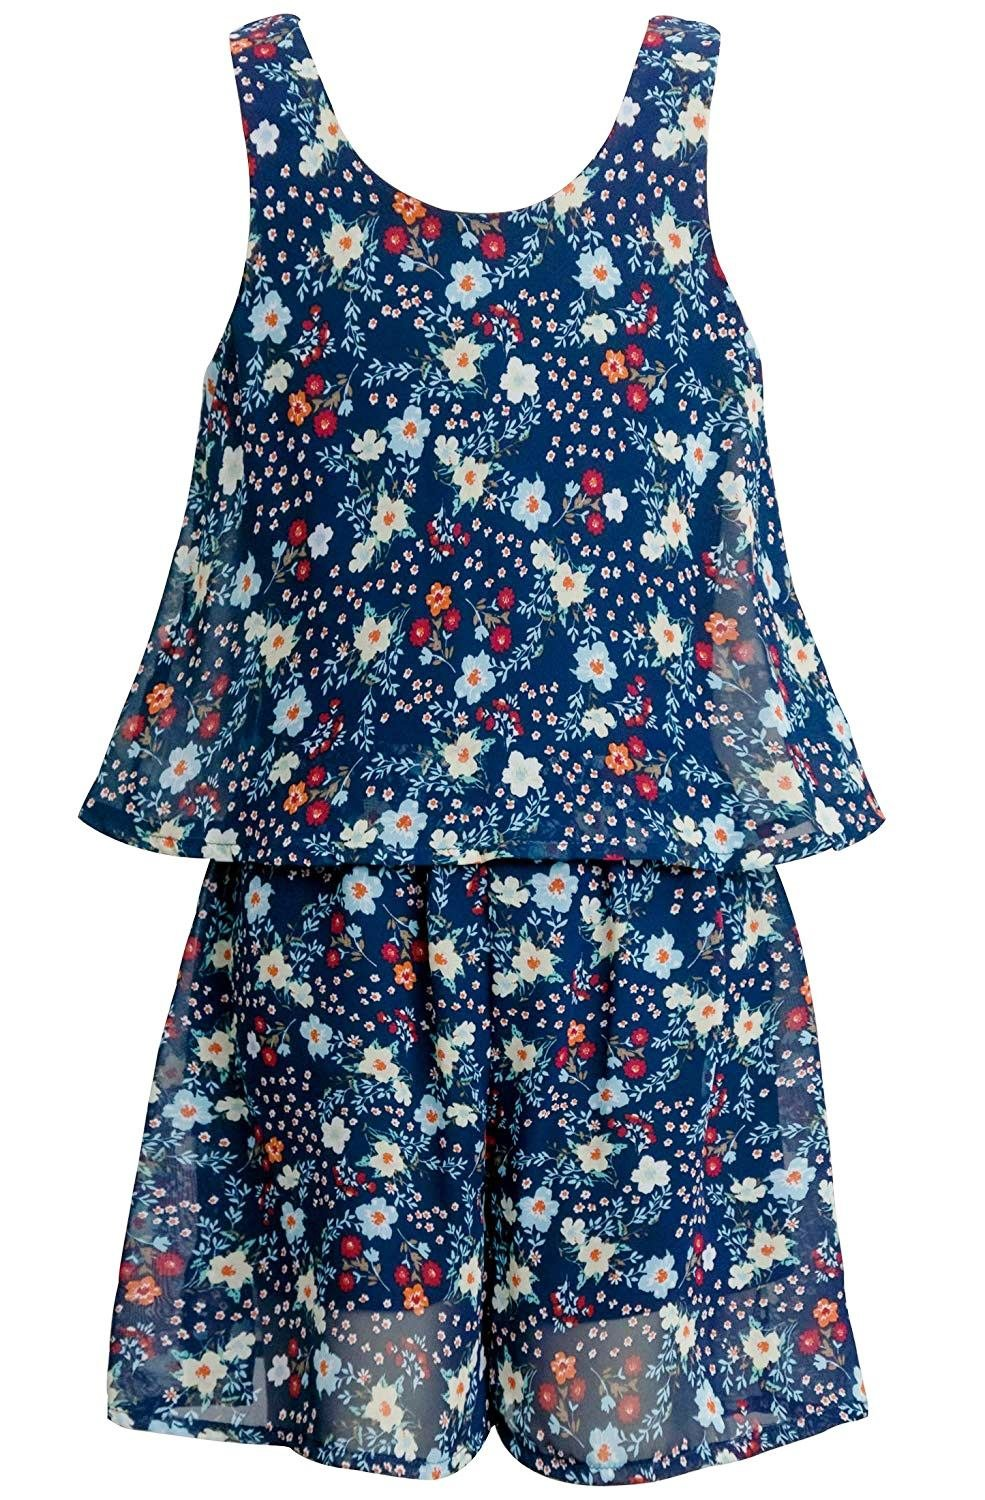 Truly Me, Big Girls Tween Sweet Floral Romper (Many Options), 7-16 (14, Navy Floral)